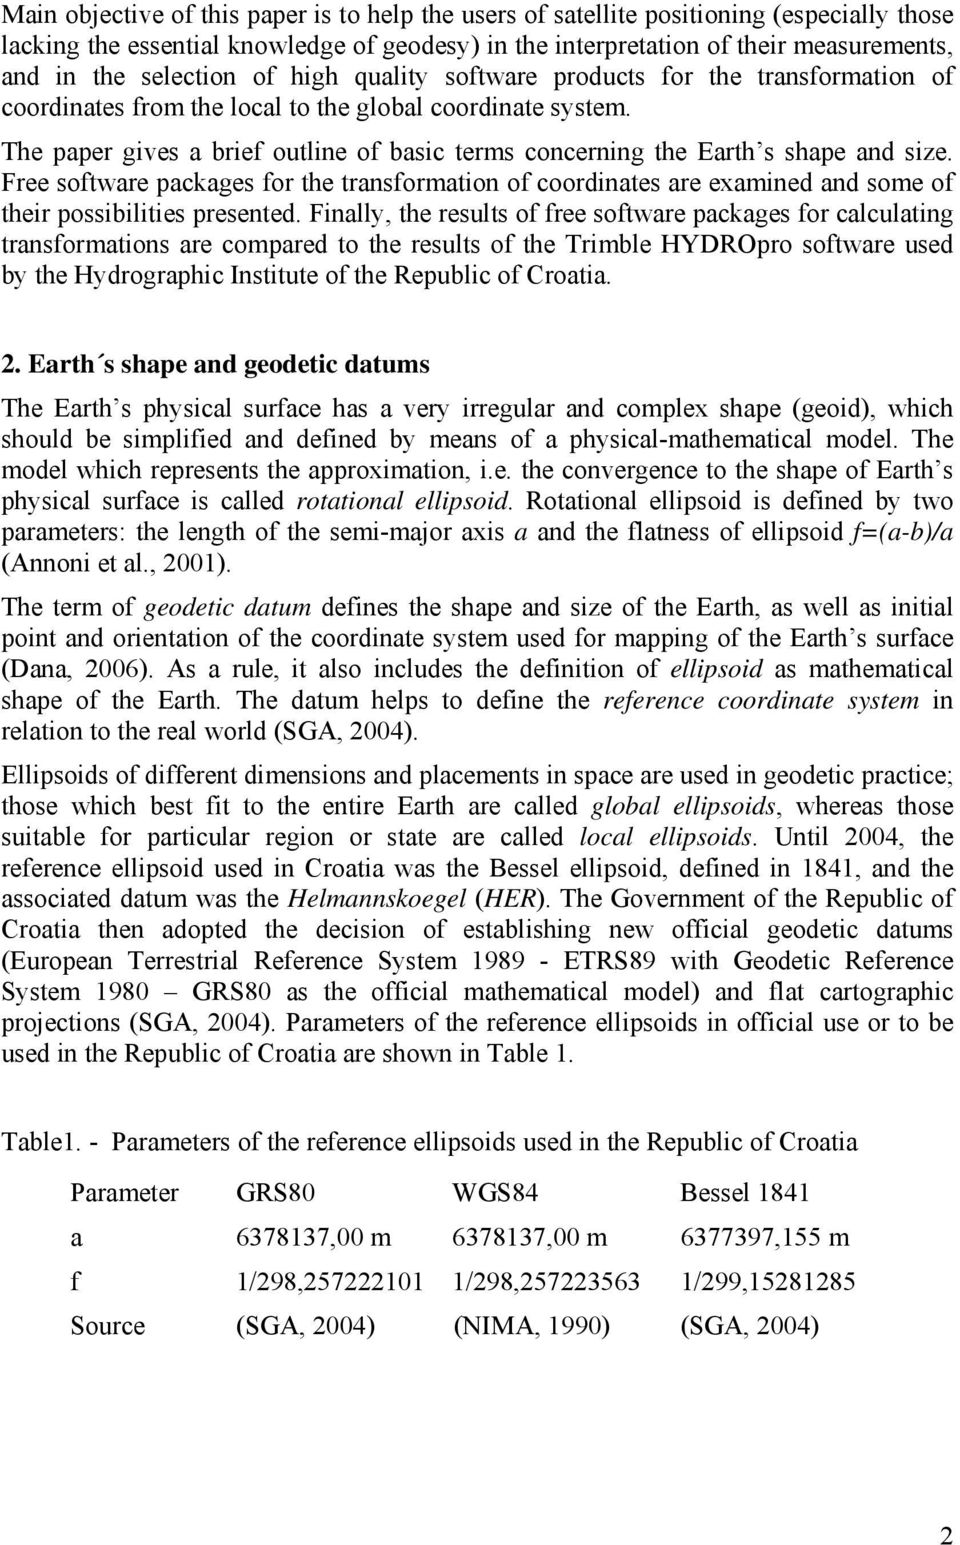 The paper gives a brief outline of basic terms concerning the Earth s shape and size.